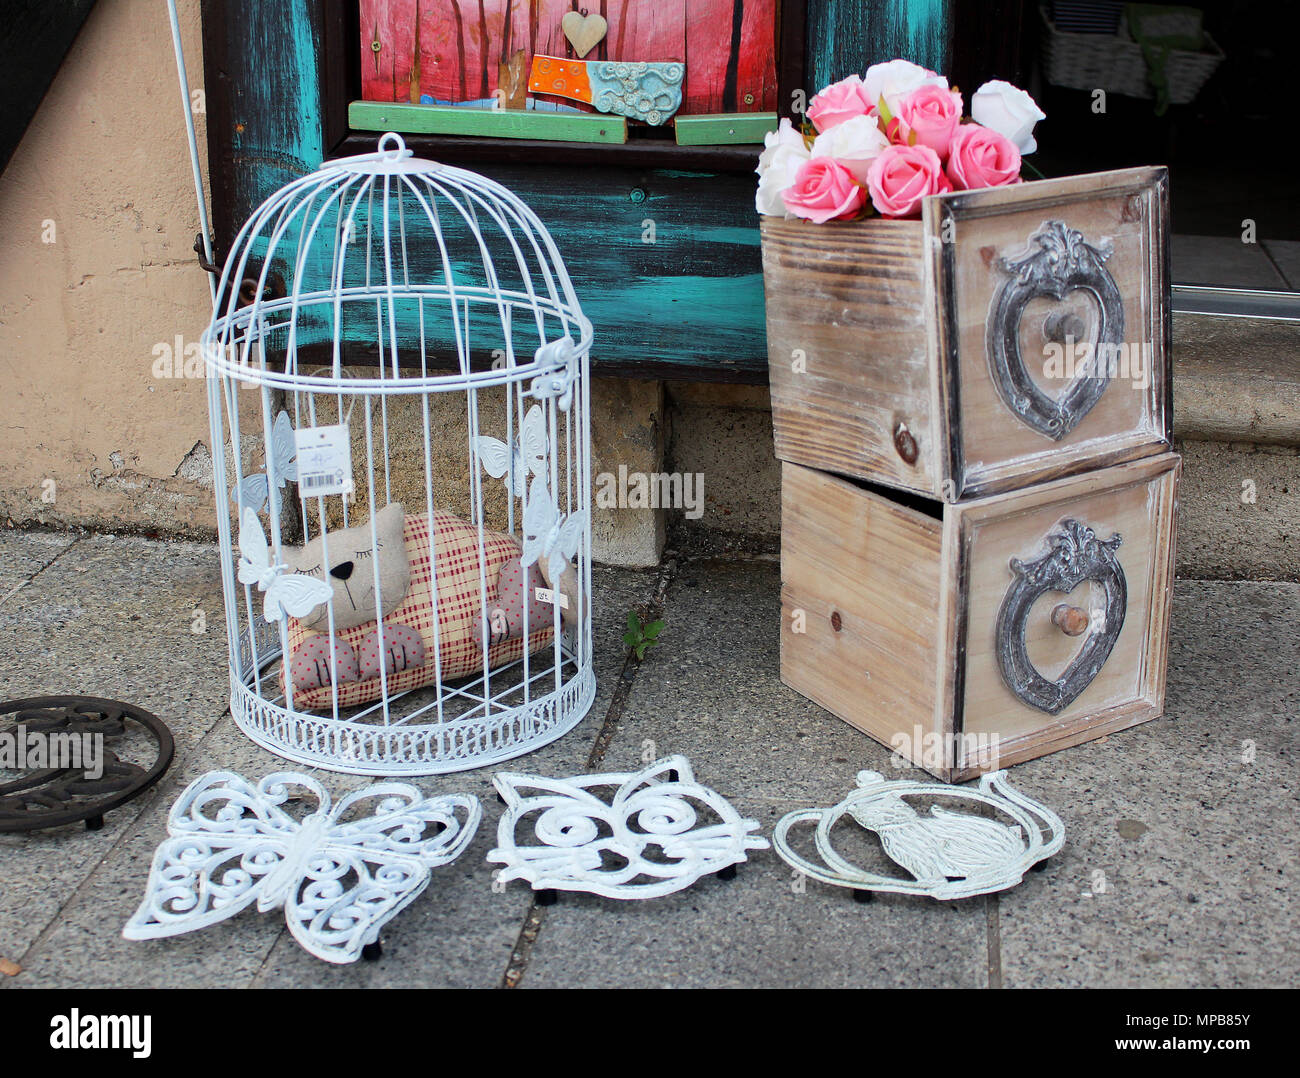 Still life - vintage decorative bird cage with statue of a